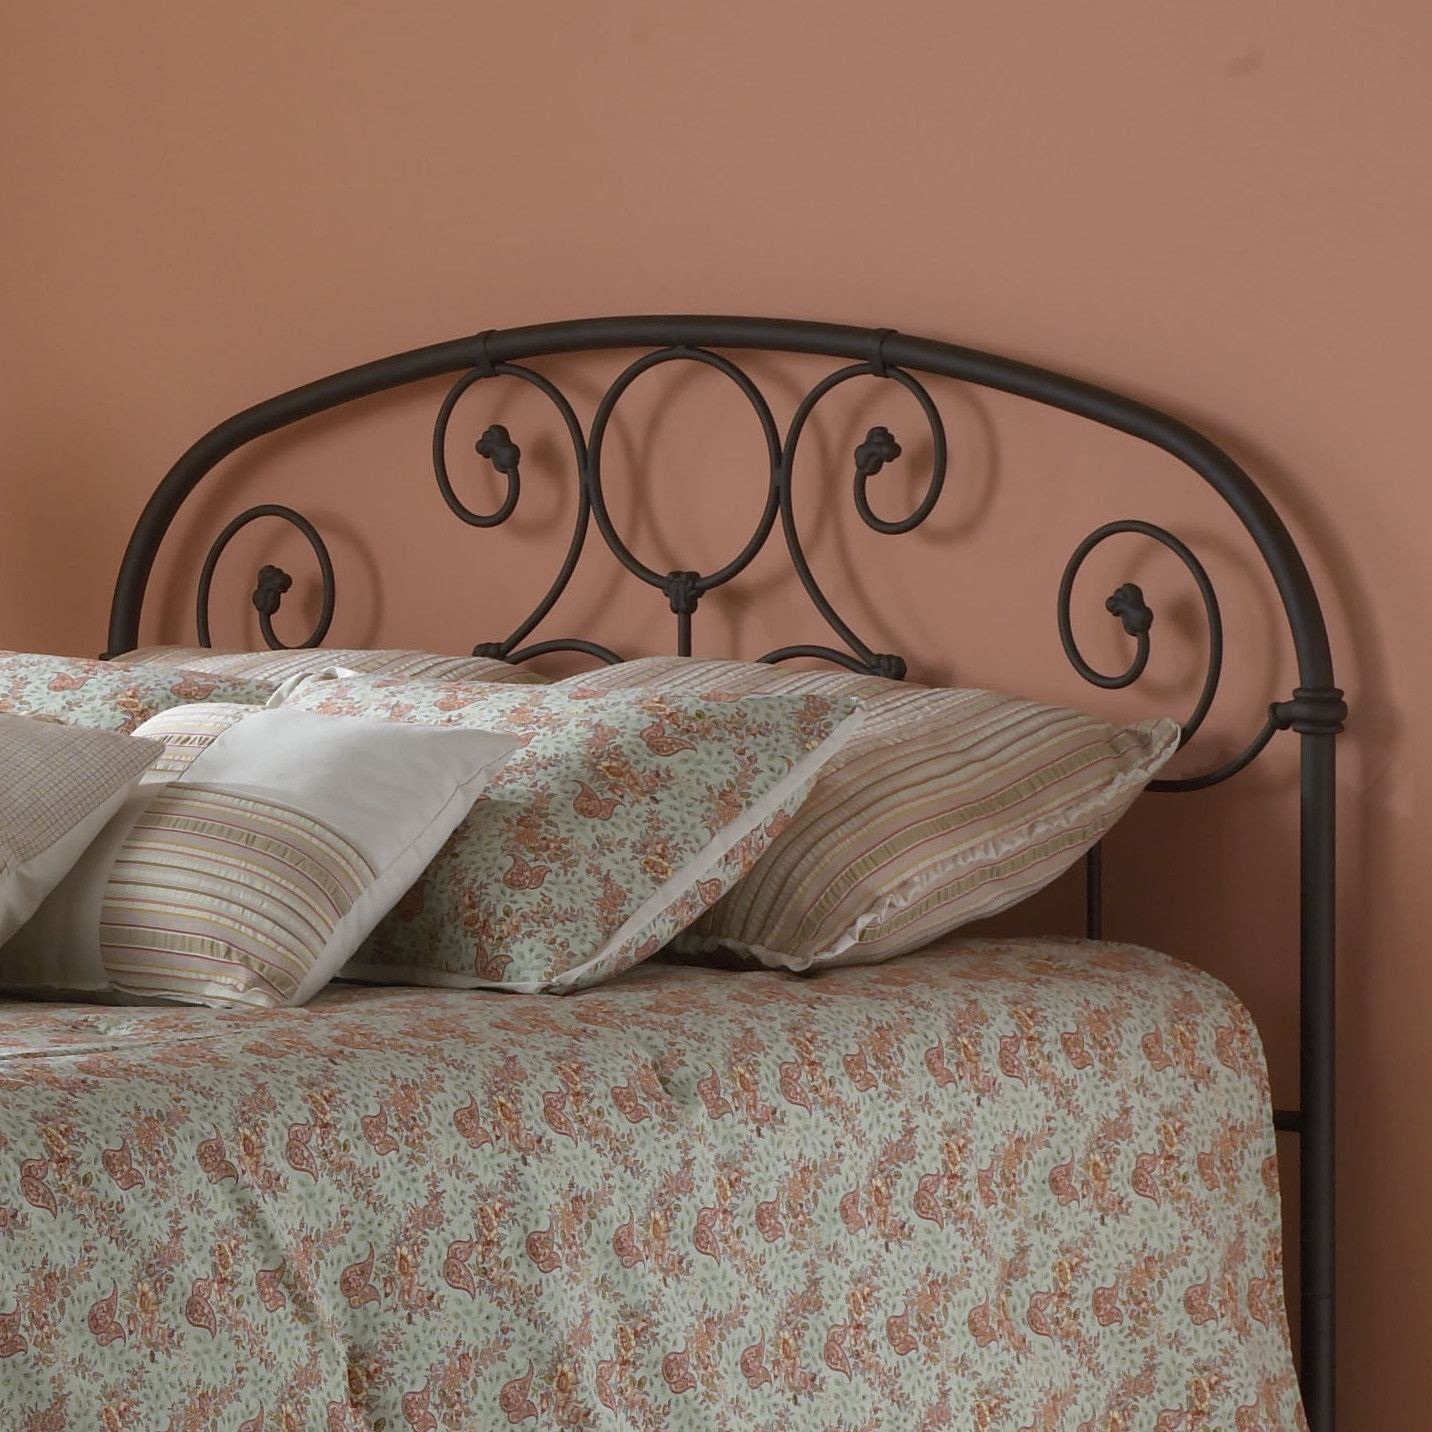 Fashion Bed Group Grafton OpenFrame Headboard Bed